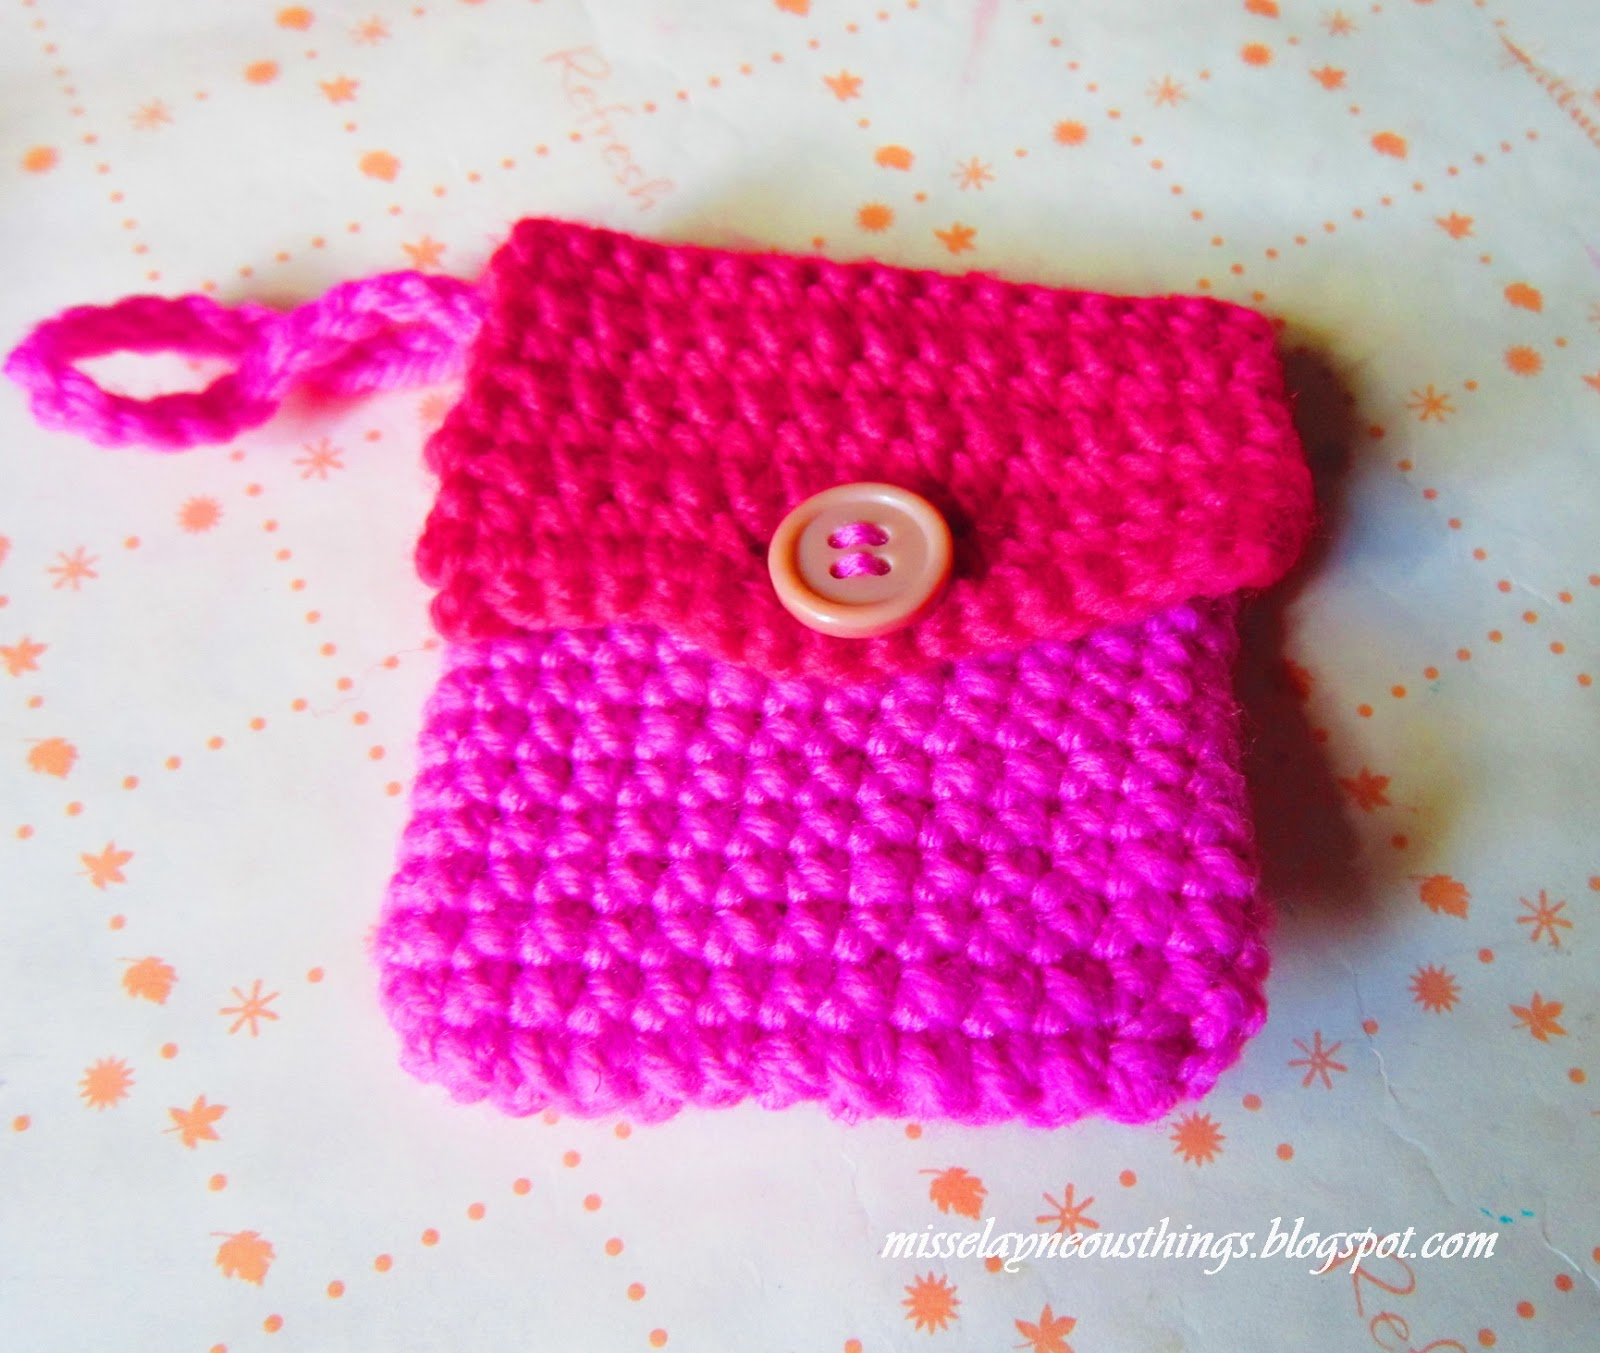 Crochet Coin Purse Pattern : Im a proud crafter: Free Crochet Coin Purse pattern